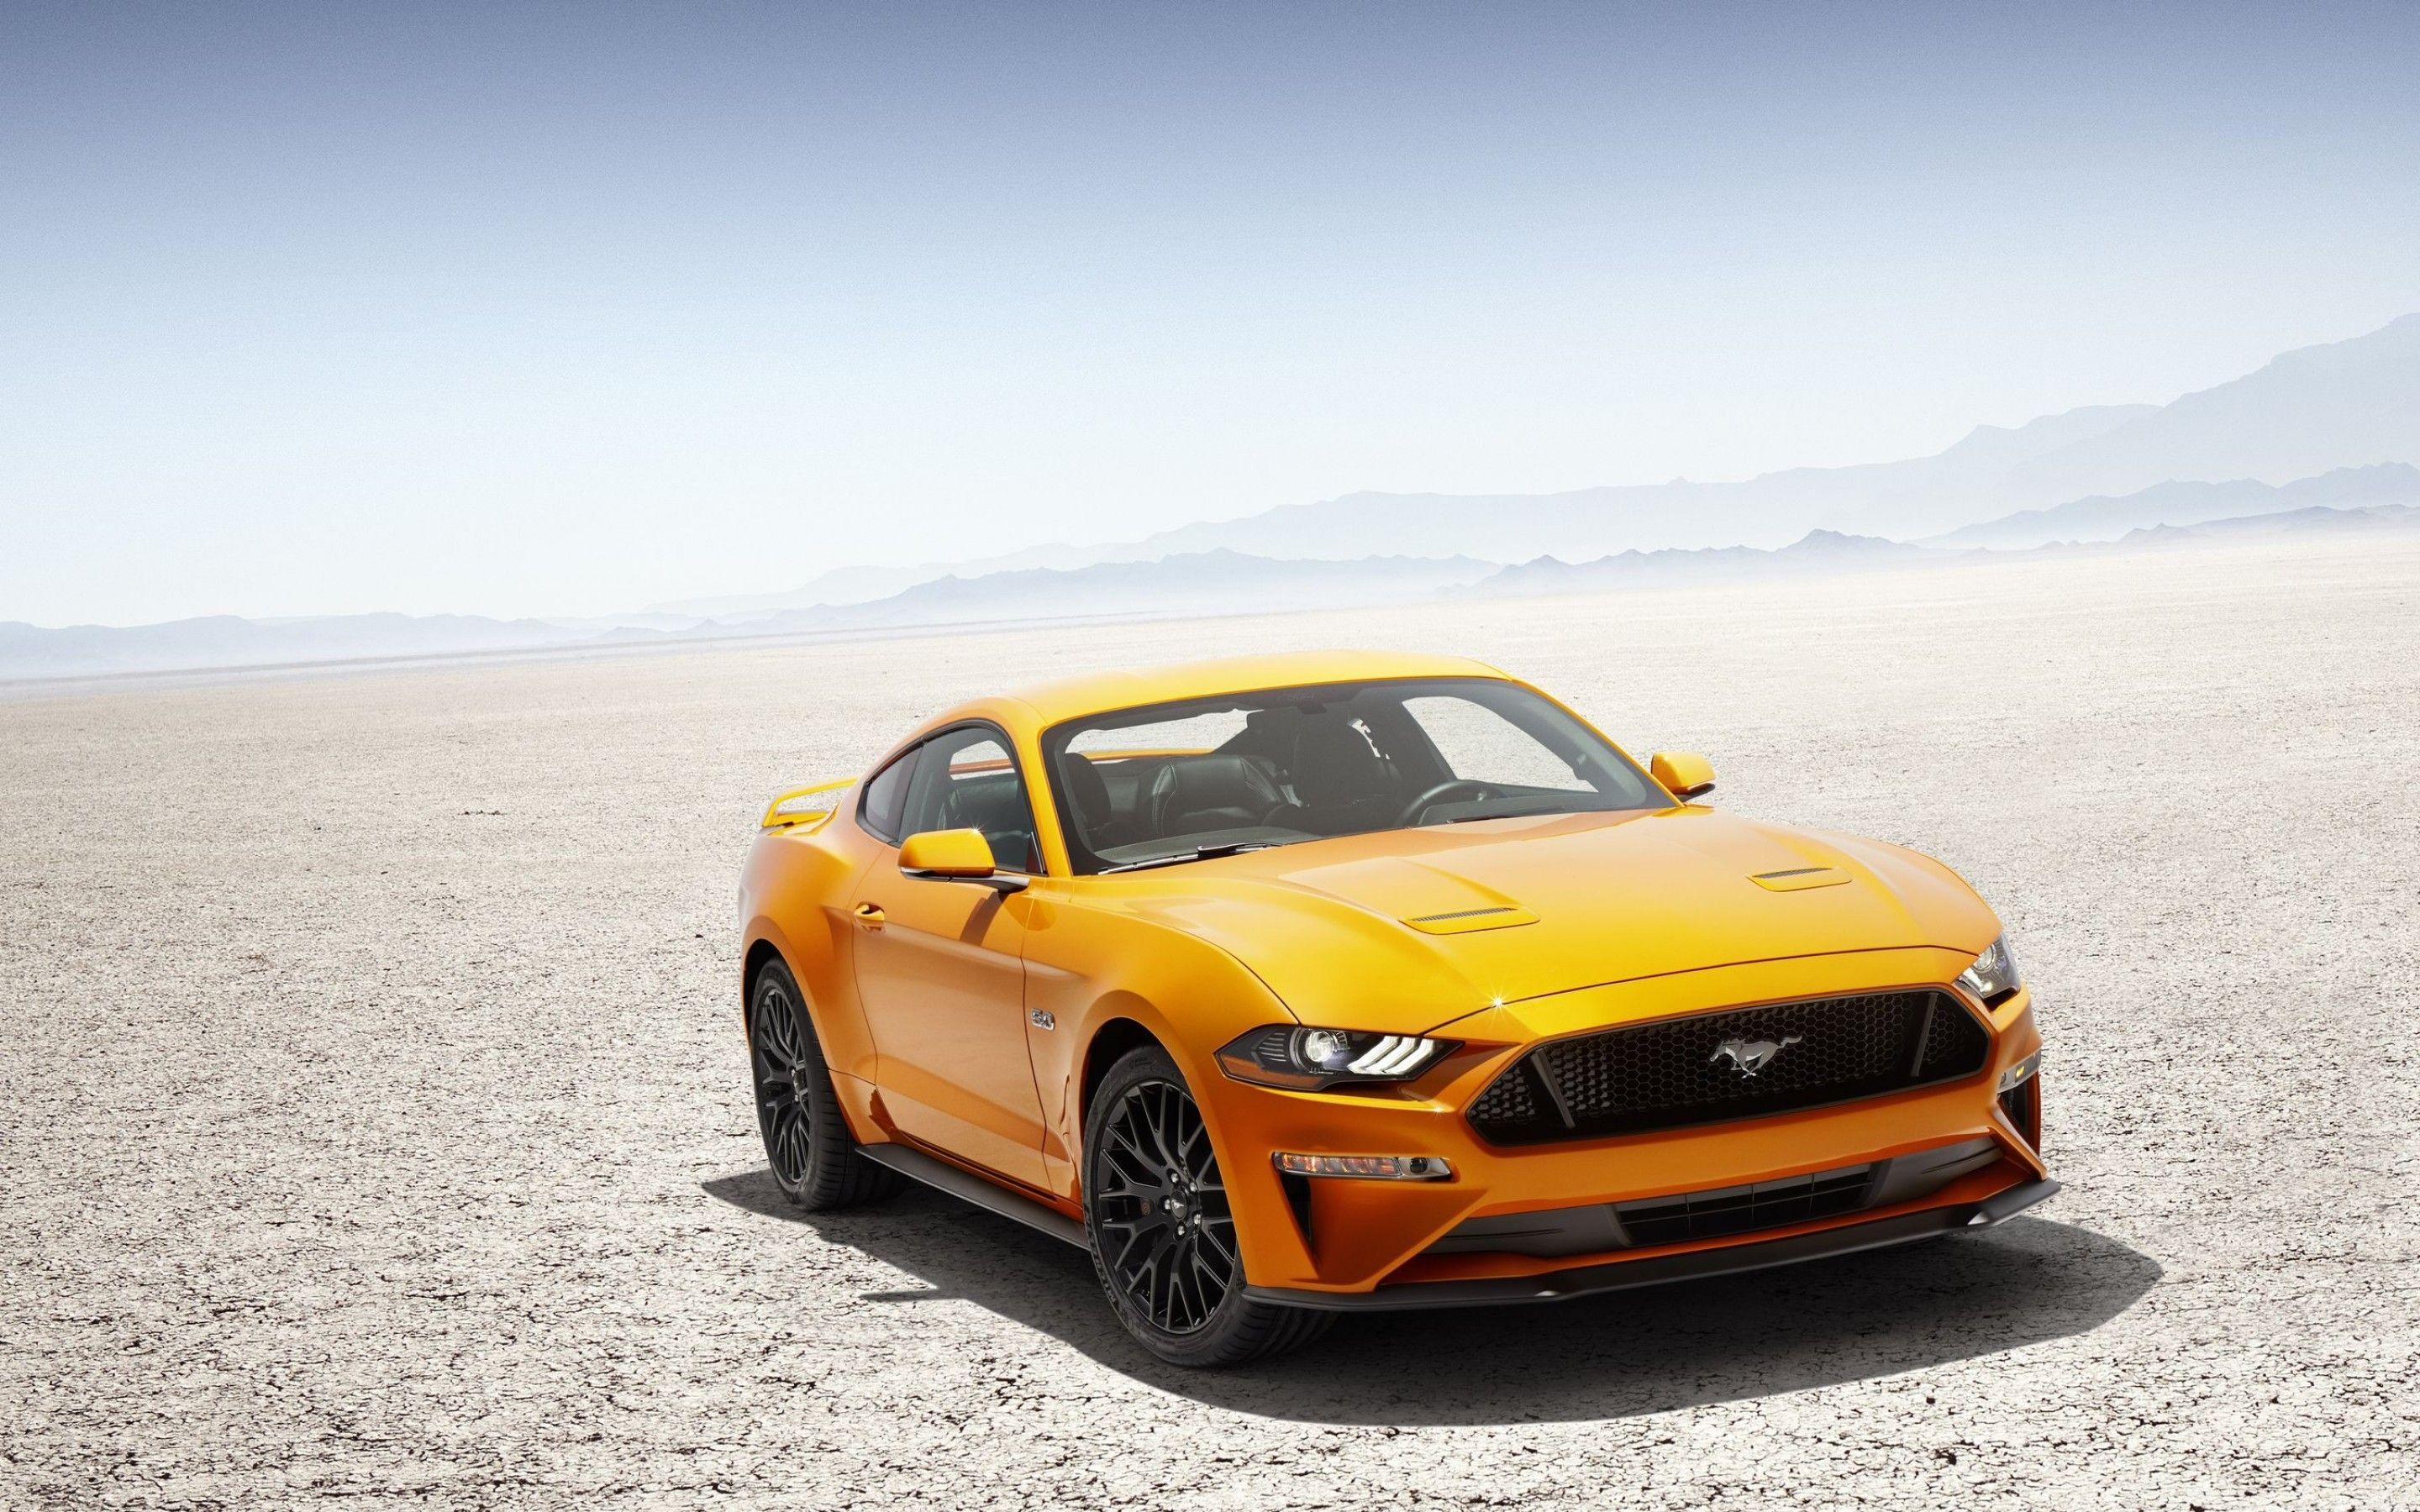 Wallpapers Ford Mustang, 2018, HD, Automotive / Cars,